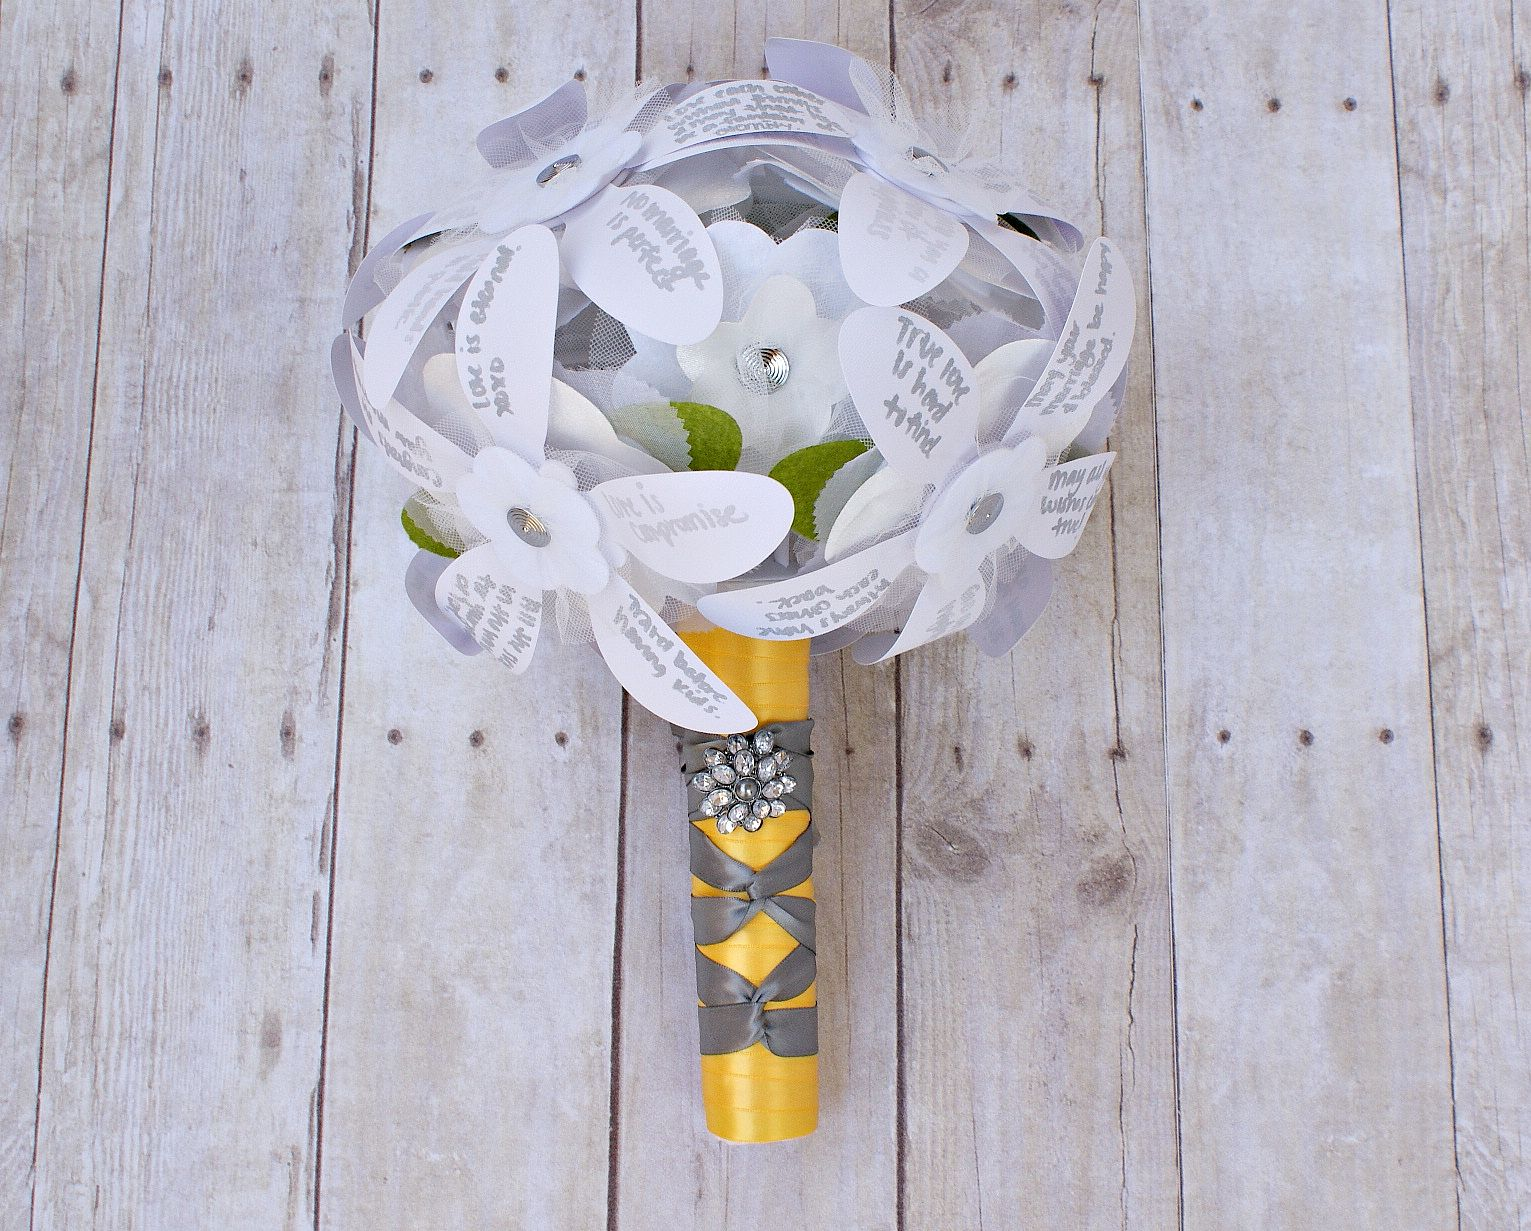 DIY Rehearsal Bouquet Of Wishes. This Replaces The Ribbon